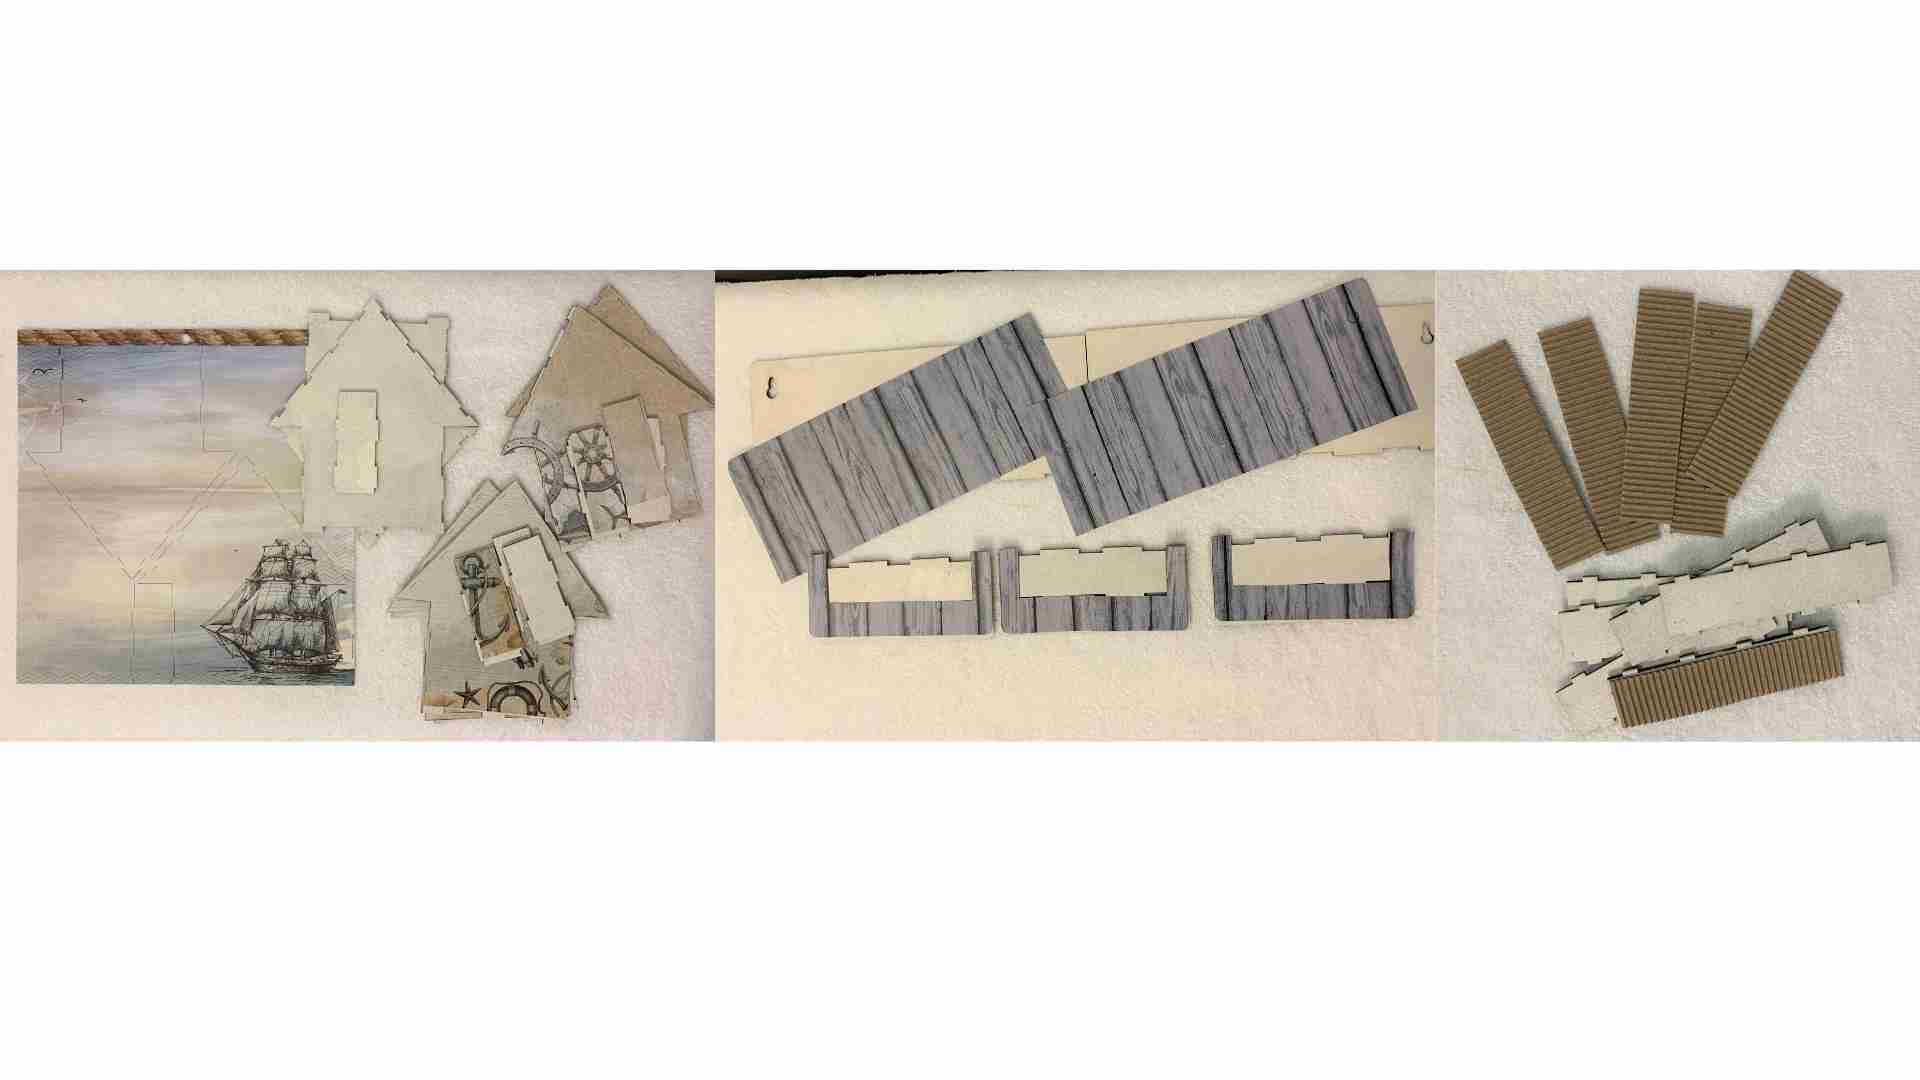 Beach Houses by Erika Venter QLD. Available from Powertex Australia- Step 2